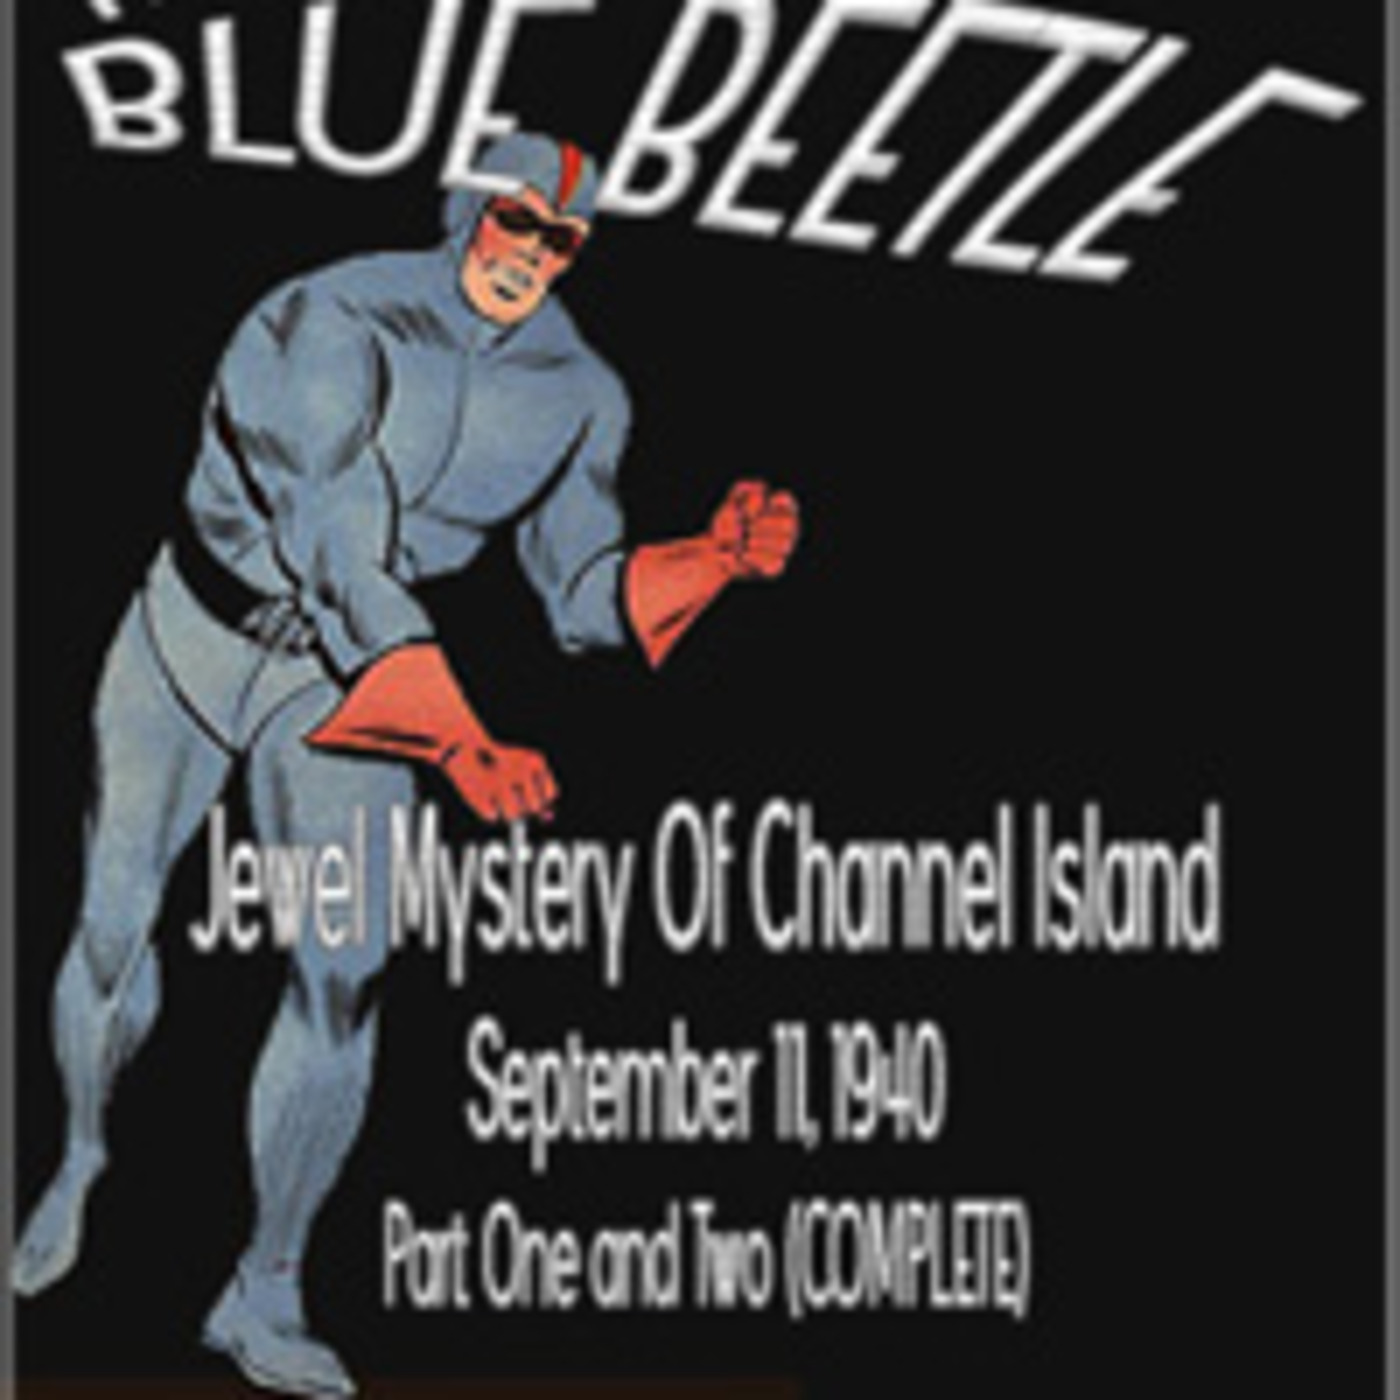 The Blue Beetle - The Jewel Mystery Of Channel Island COMPLETE (09-11-40)